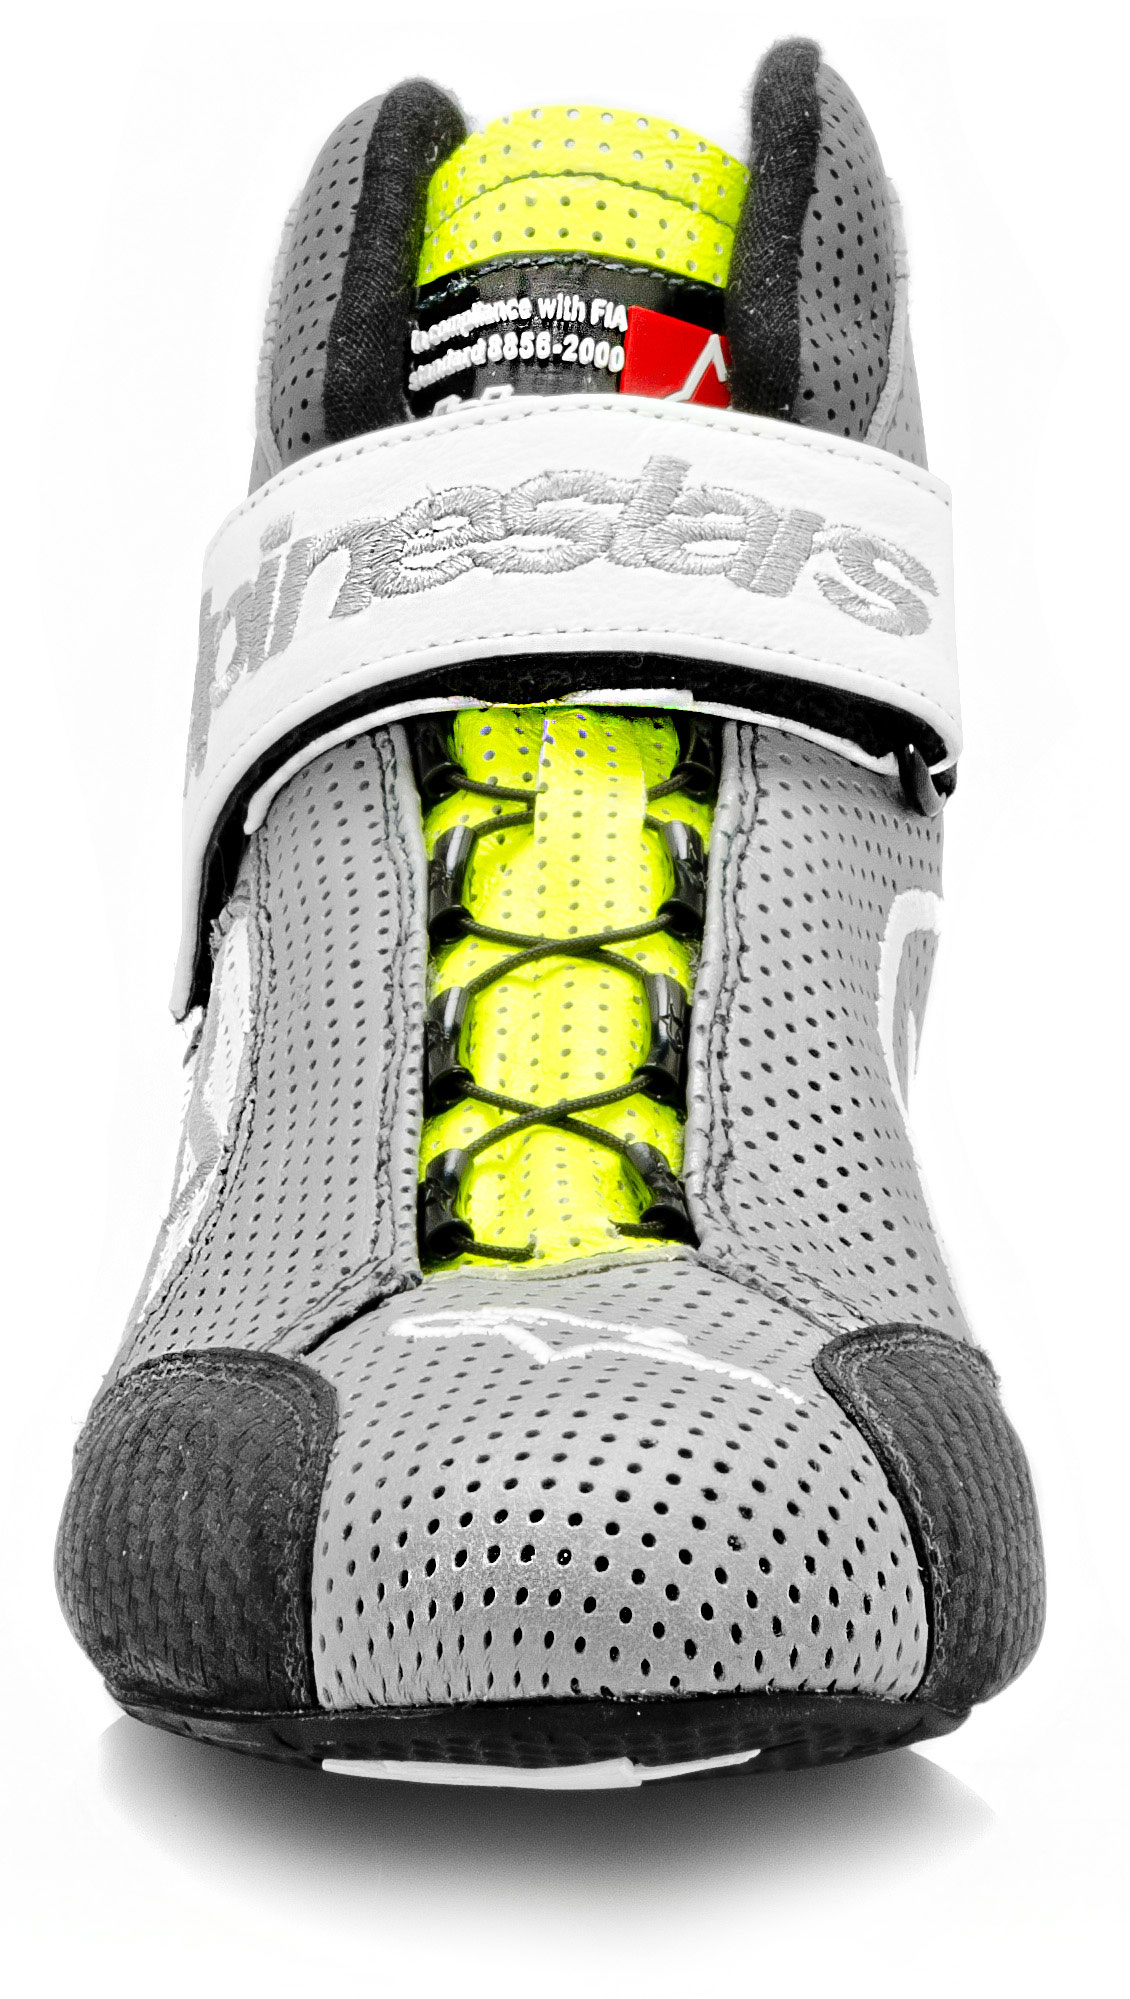 tech-1-z-gray-yellow-fluo-rot1